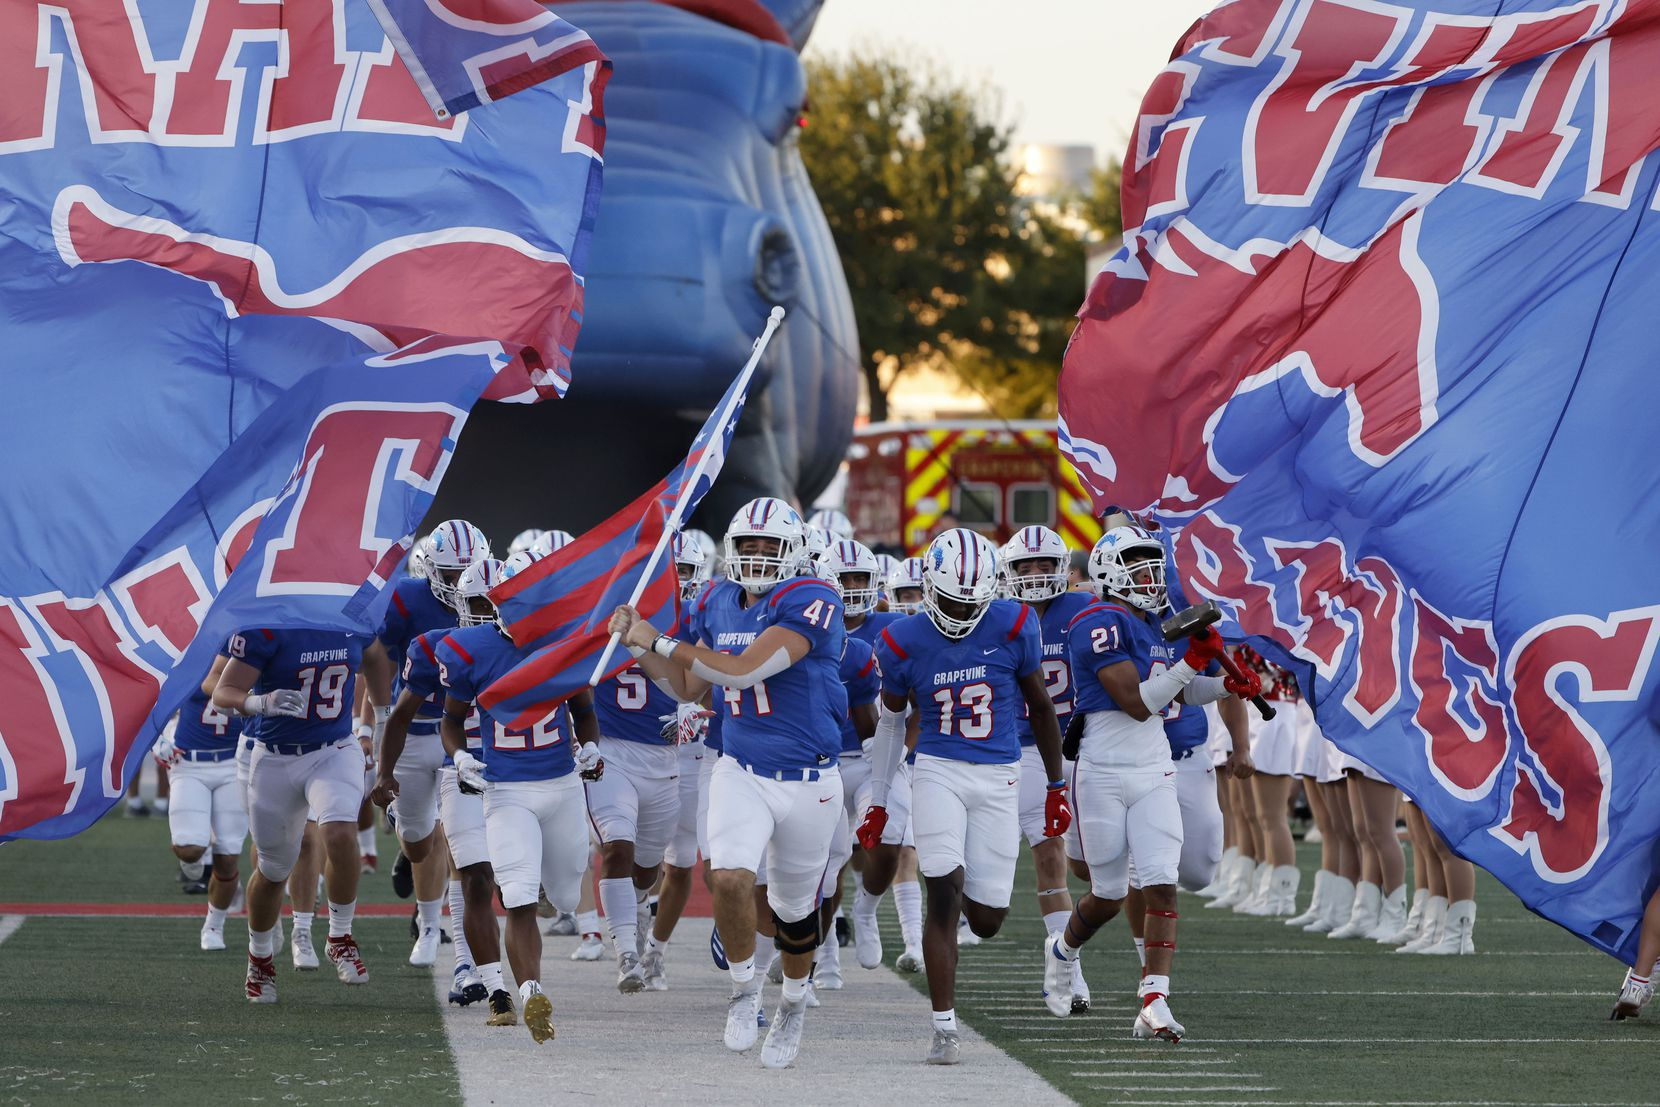 Grapevine players run onto the field prior to playing Colleyville Heritage during the first half of their high school football game in Grapevine, Texas on Aug. 27, 2021. (Michael Ainsworth/Special Contributor)